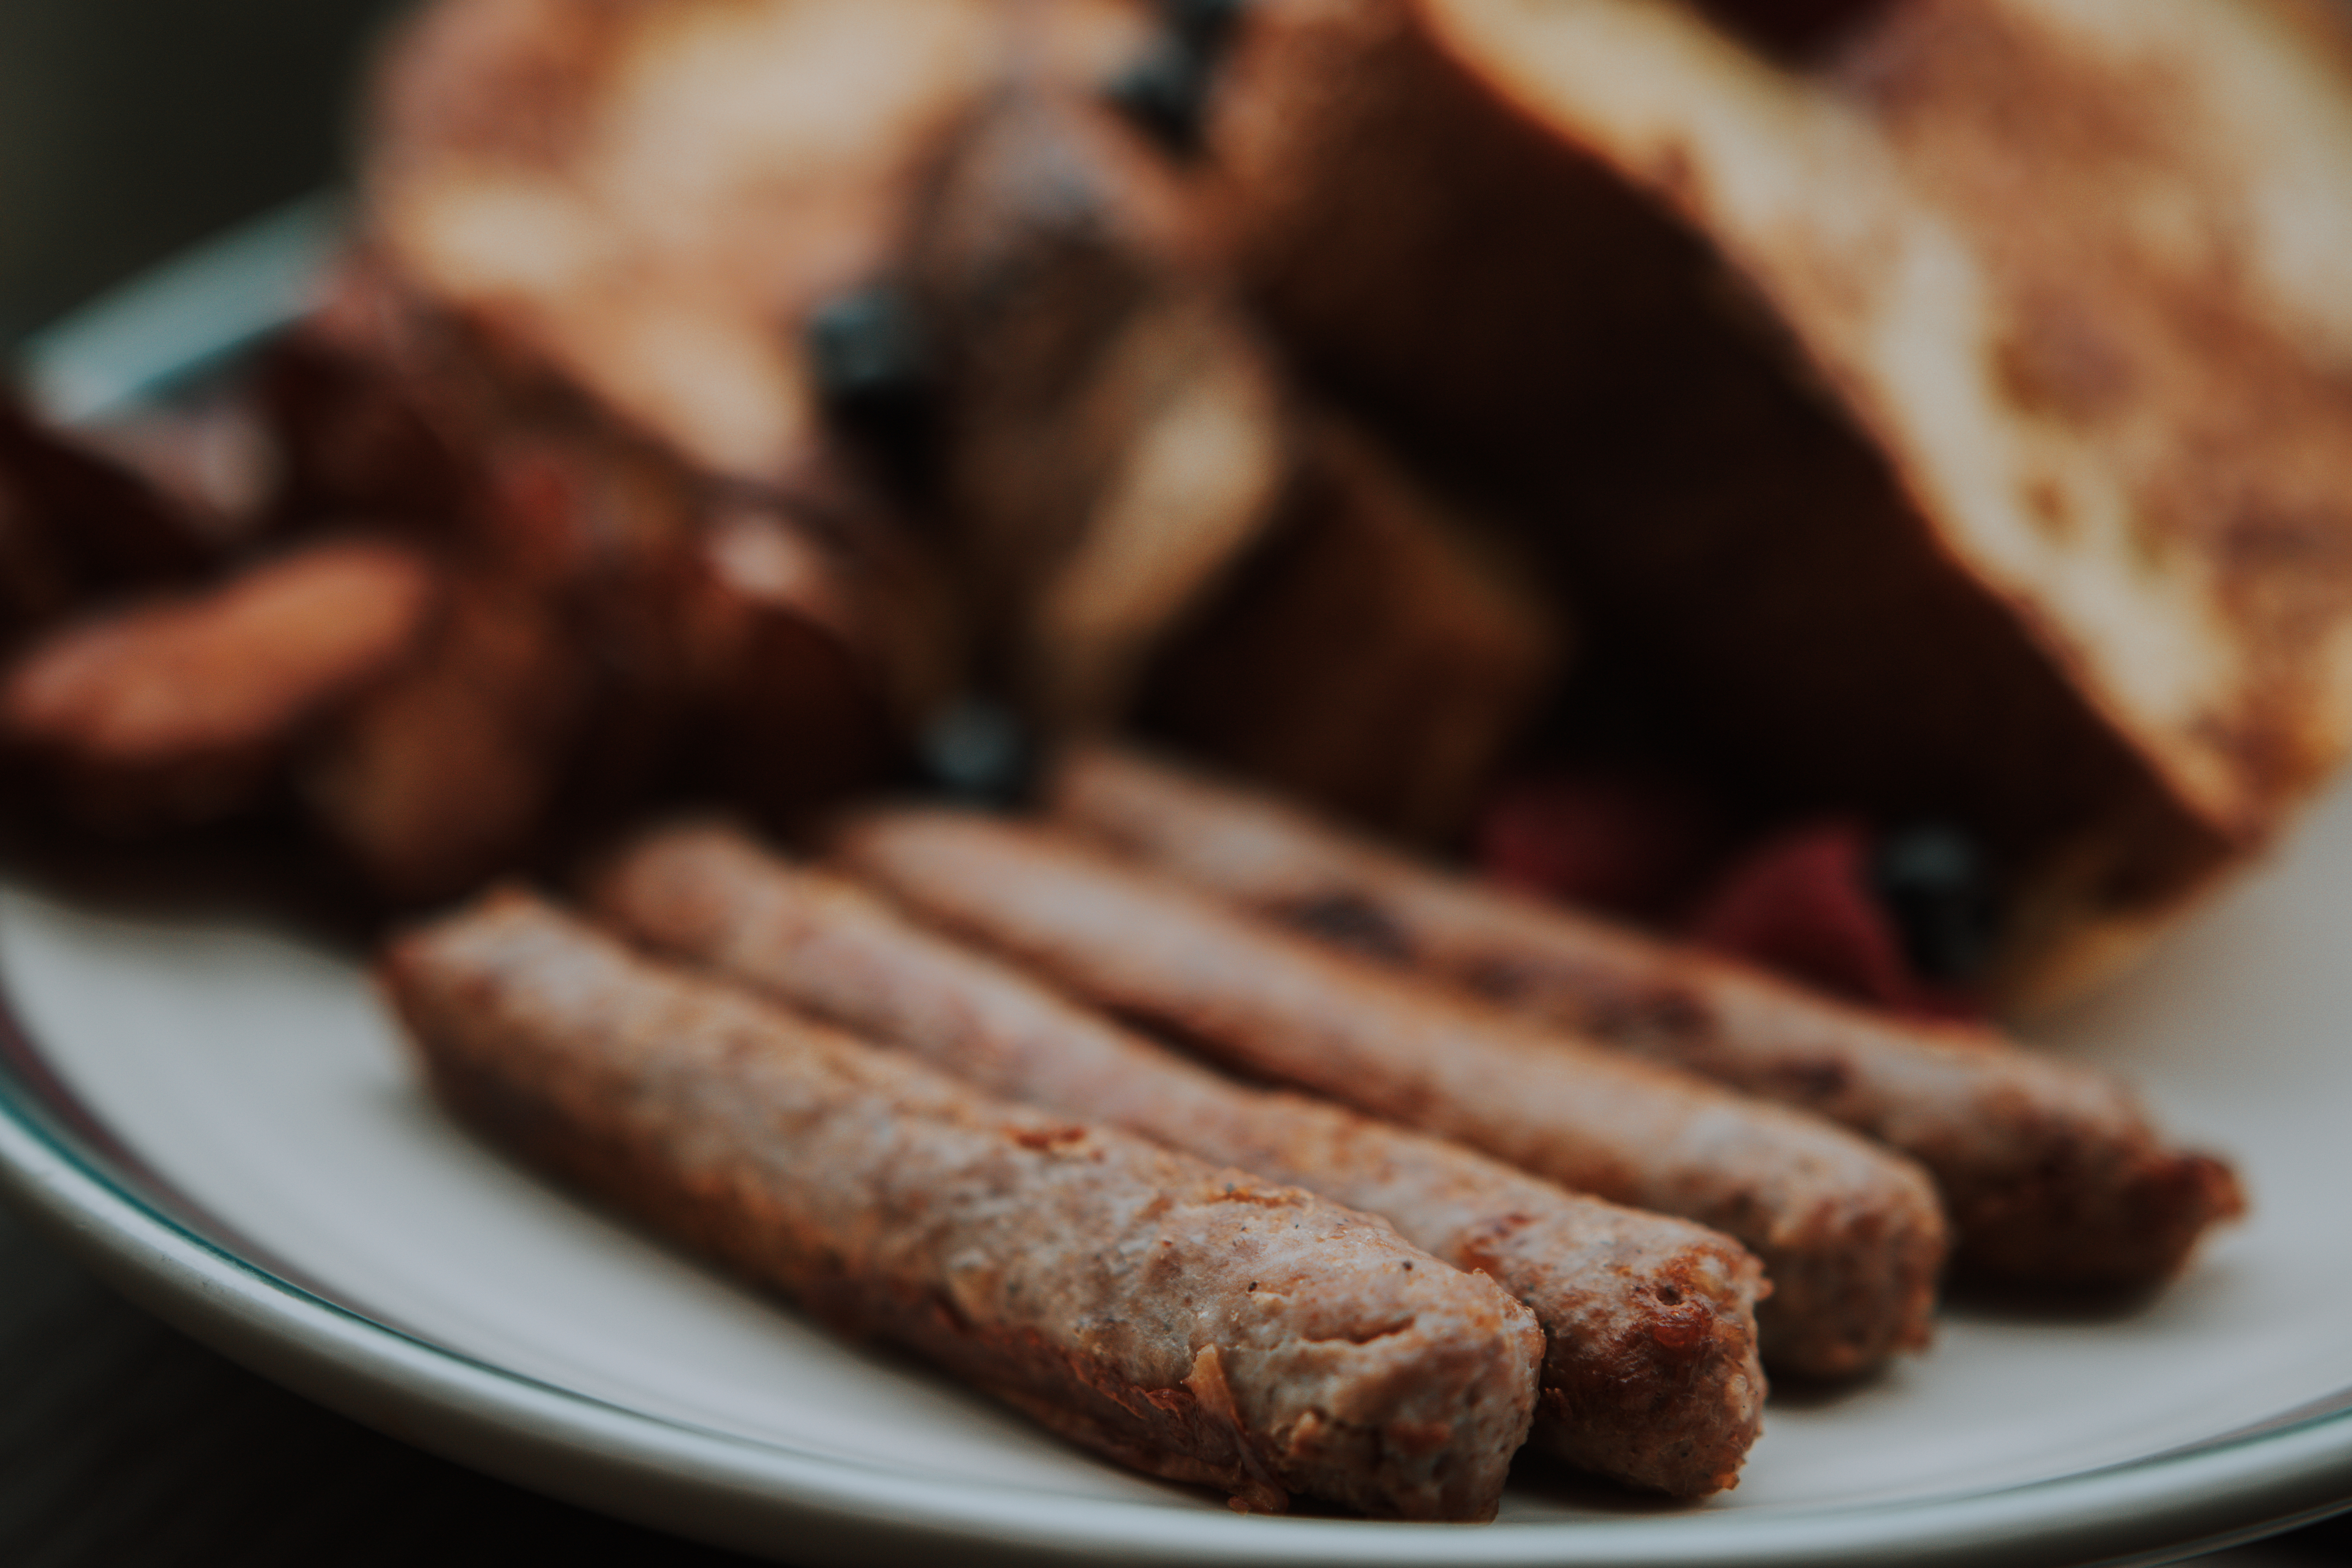 The perfect breakfast in bed recipes using Uncle Charley's Sausage.